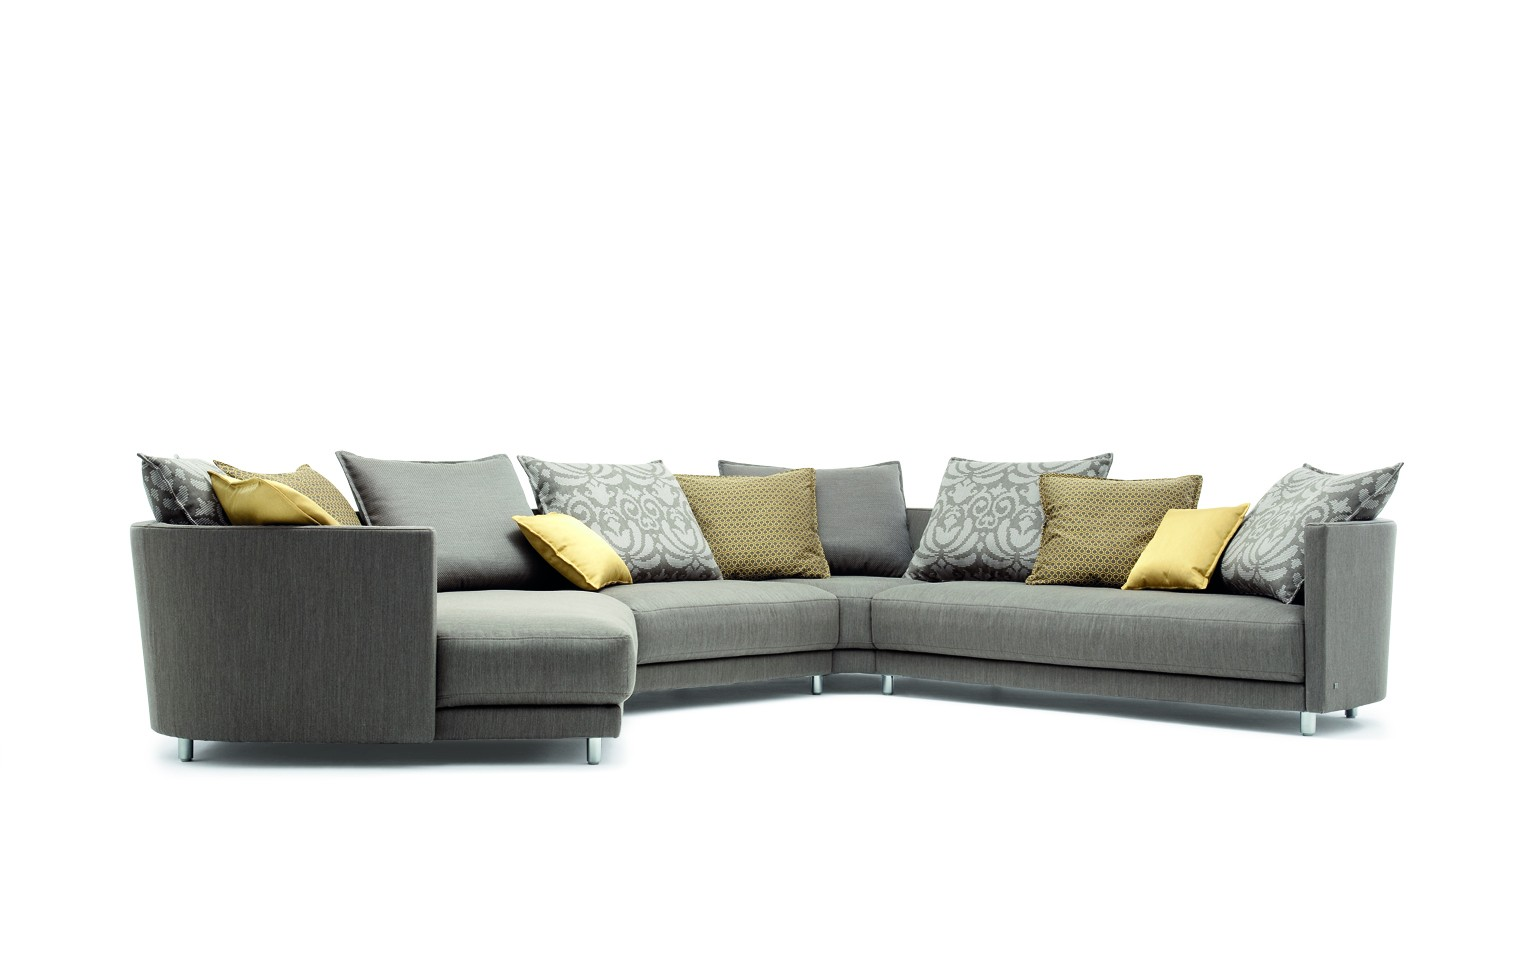 Amazing Rolf Benz Sofa Price Range: Amazing Grey Color Floral Cushion Decor Rolf Benz Sofa Price Design